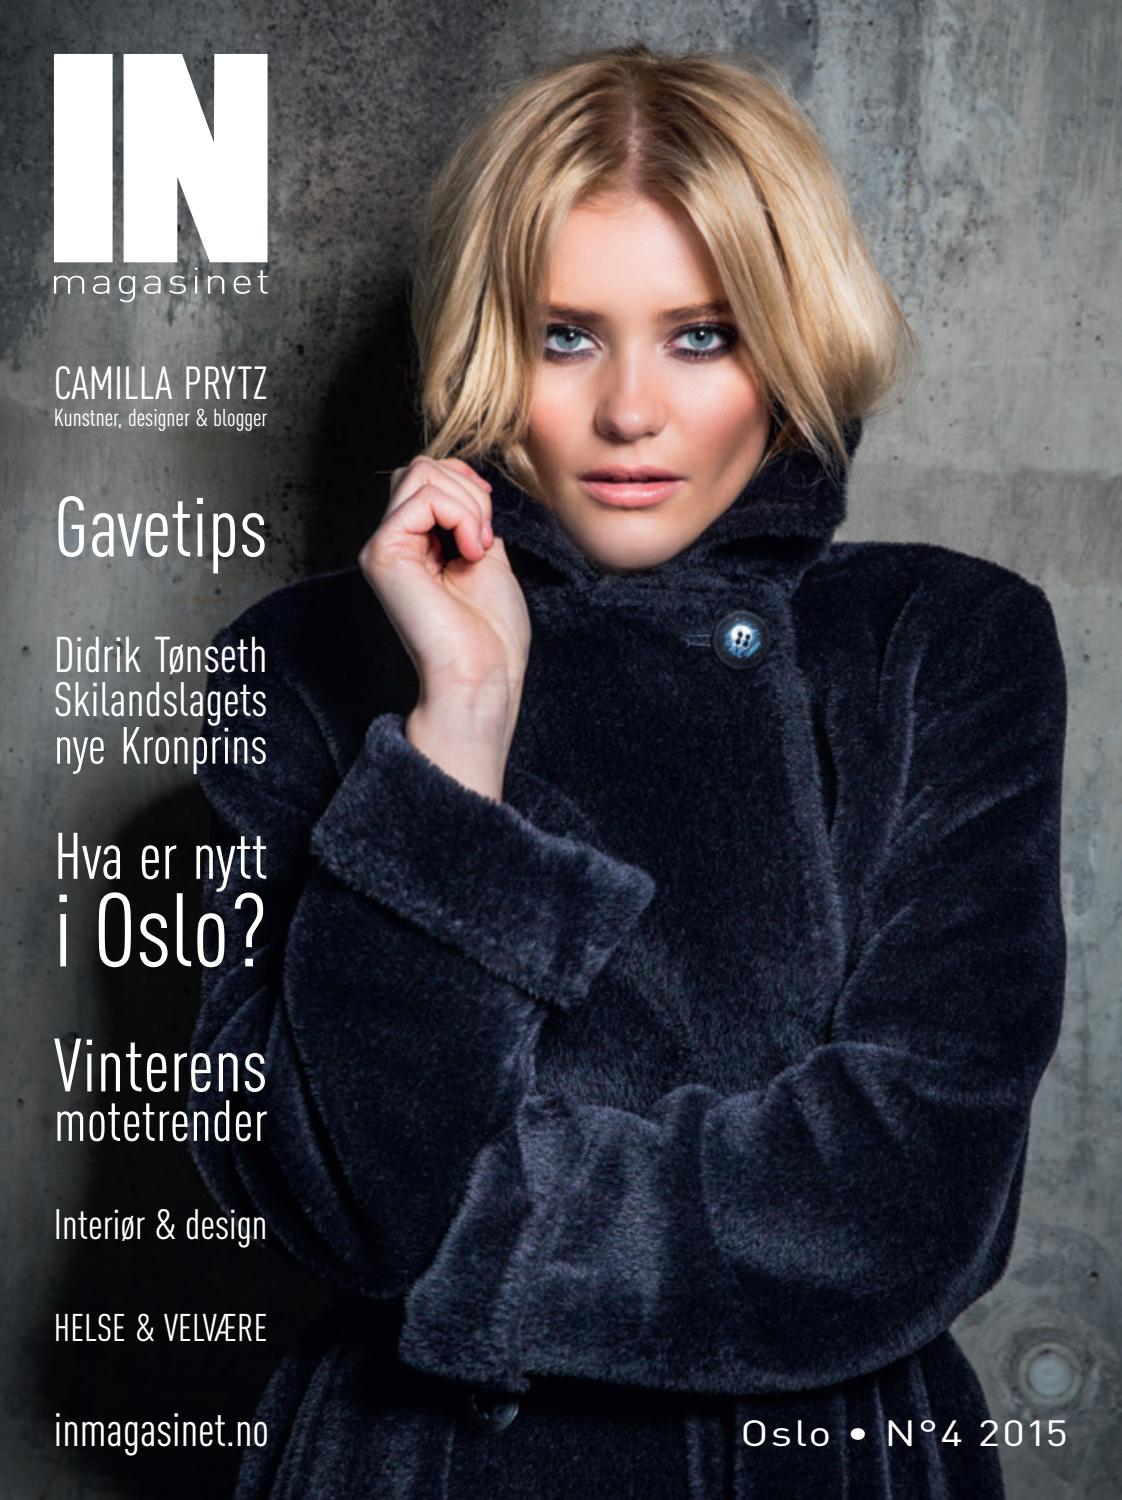 e62692a4 IN Oslo 04 2015 by IN magasinet - issuu